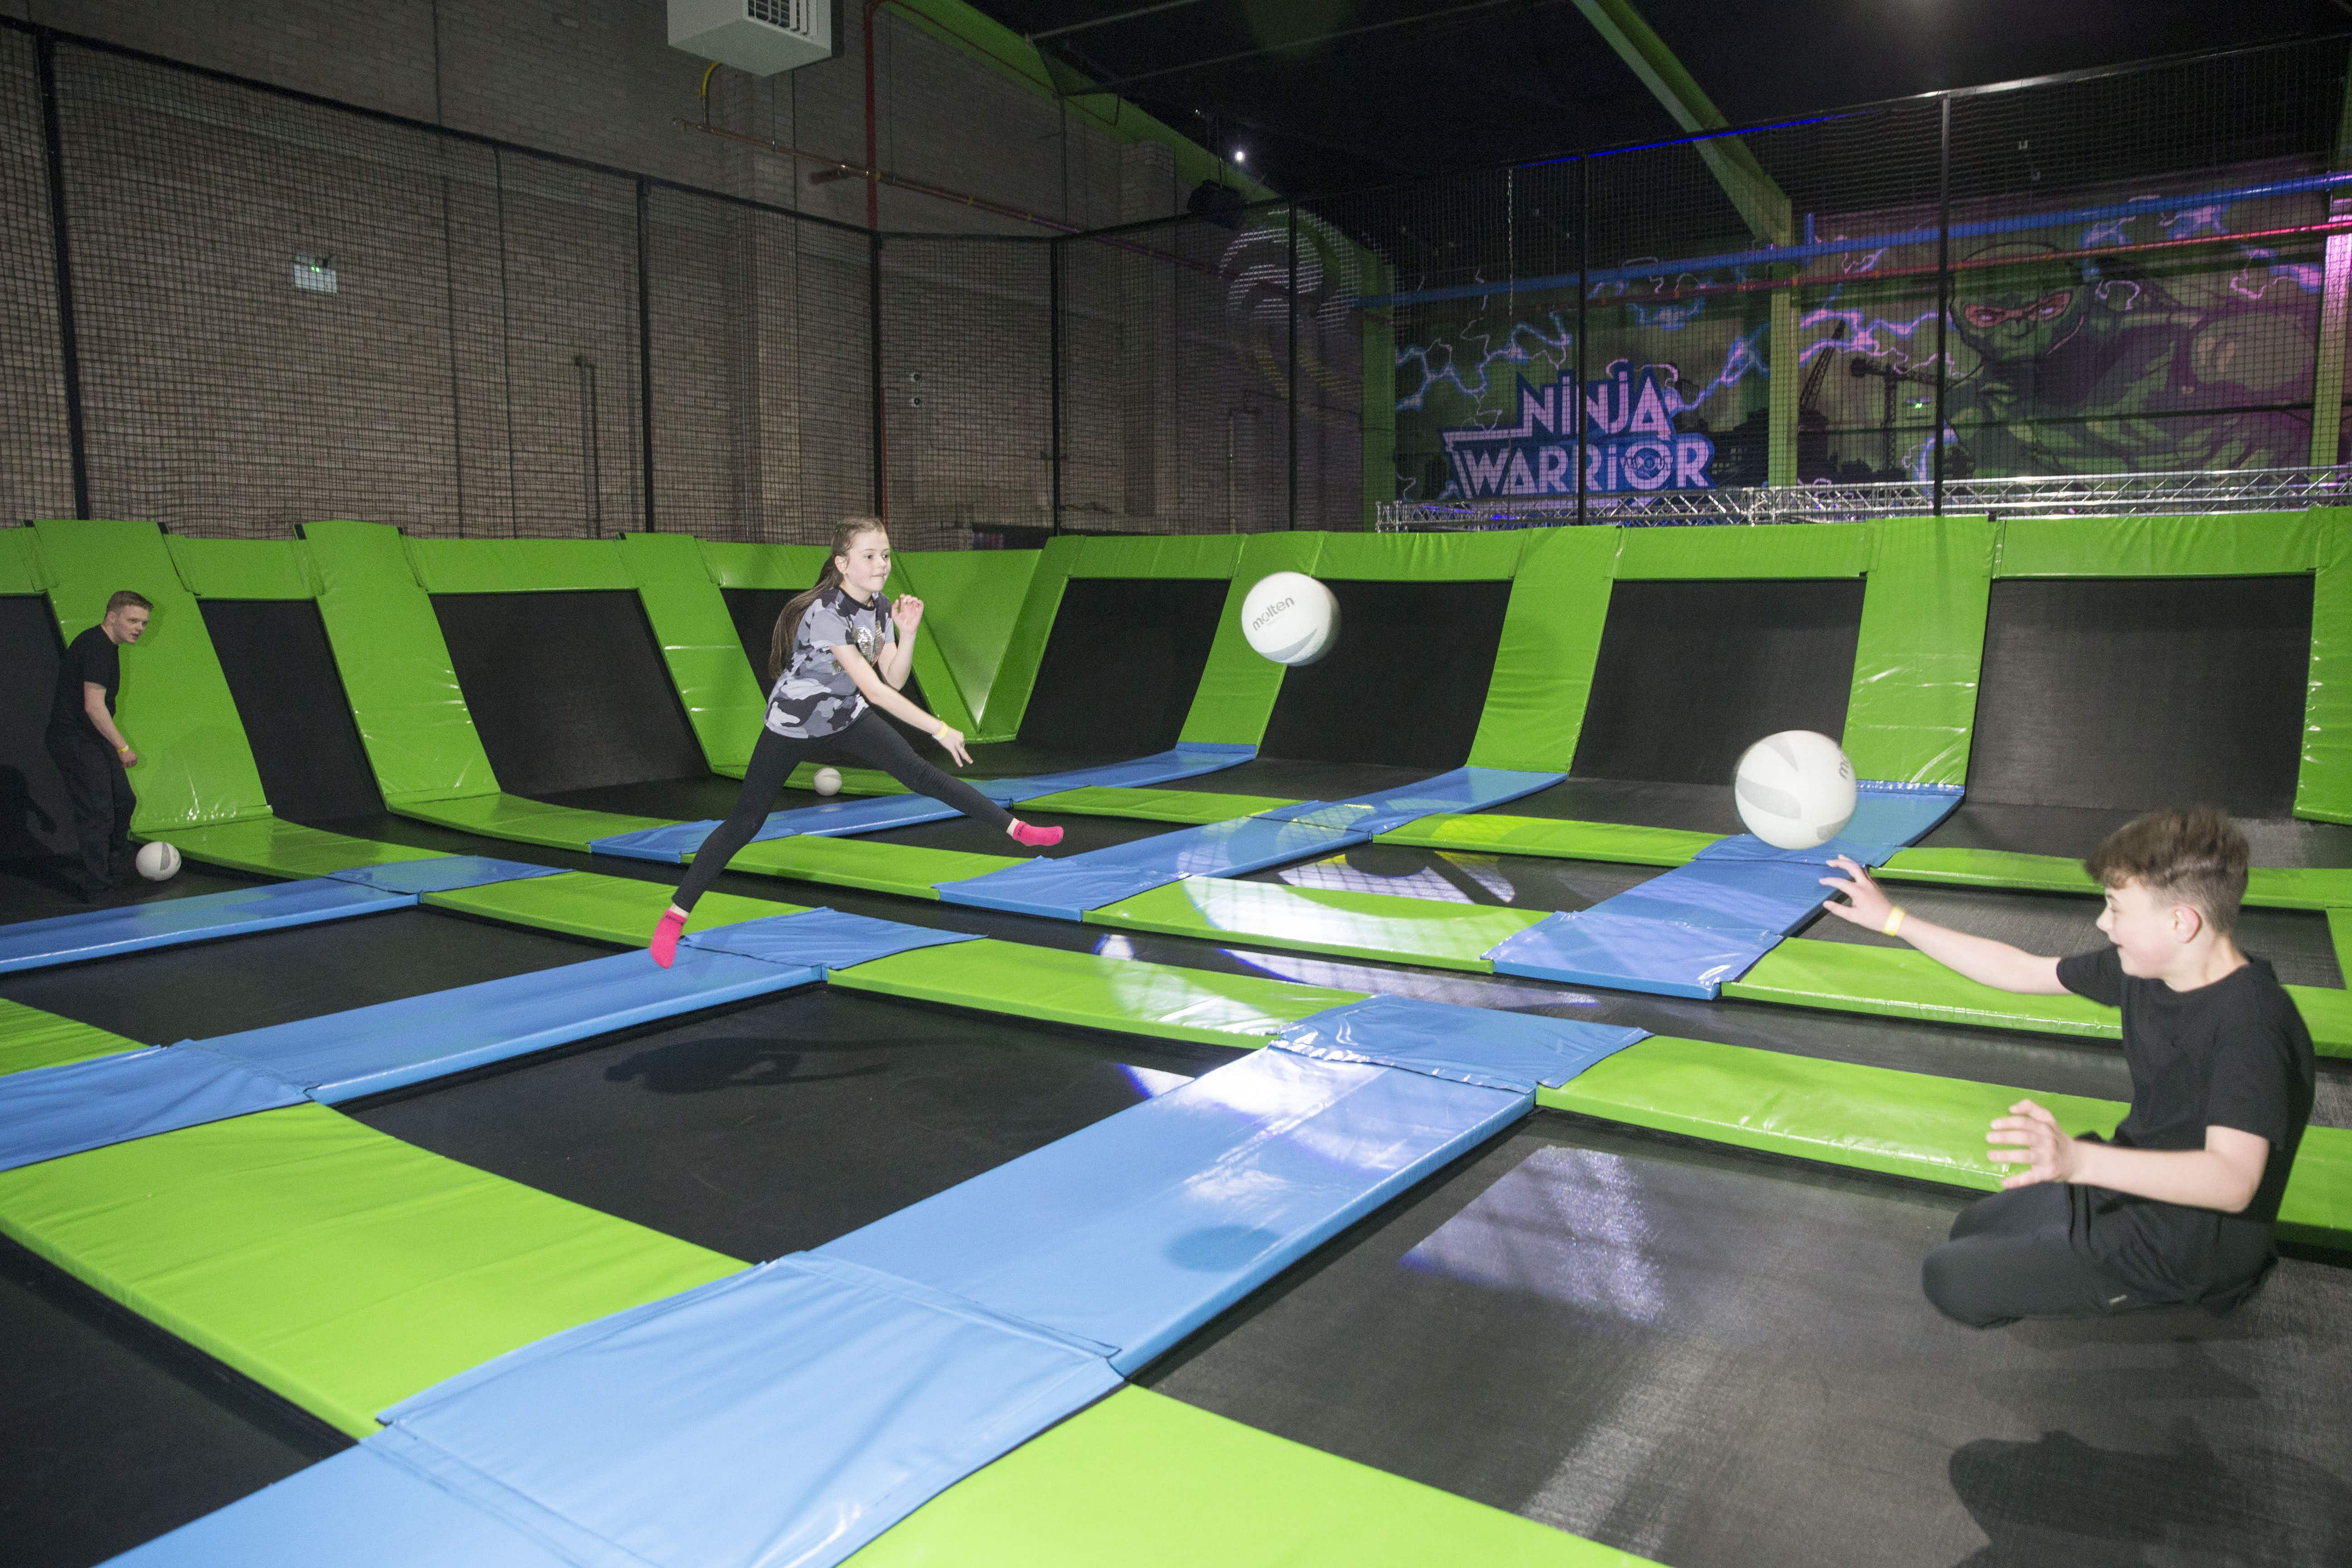 As the craze takes off across the globe, the world's biggest trampoline arena opens in Scotland